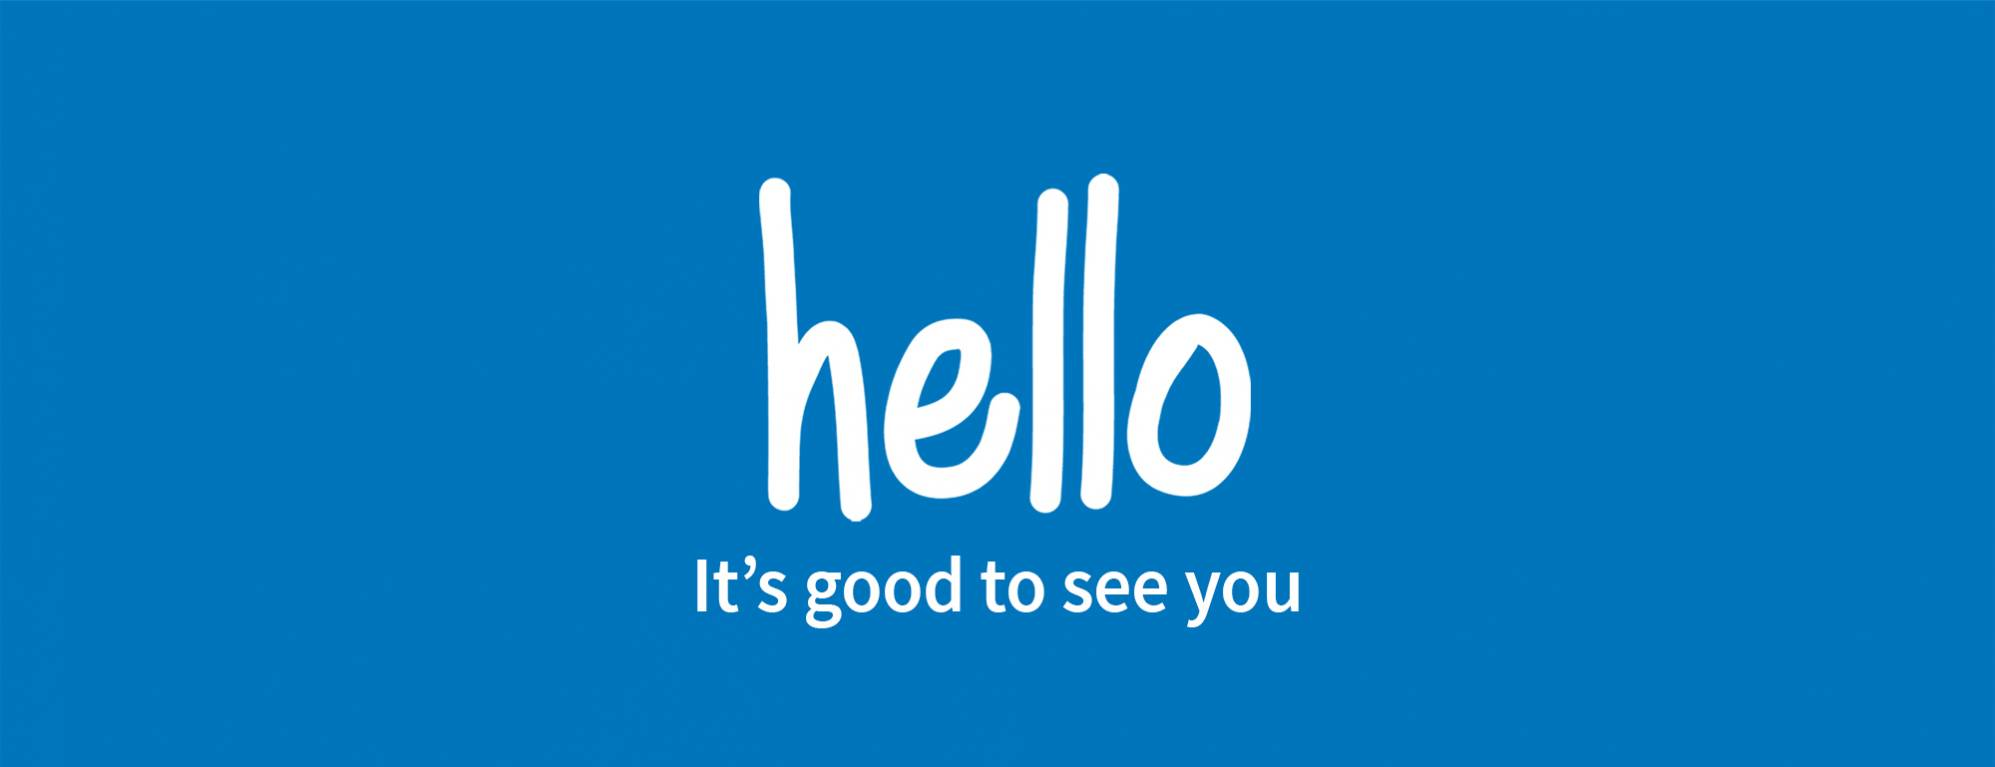 Text with hello it's good to see you